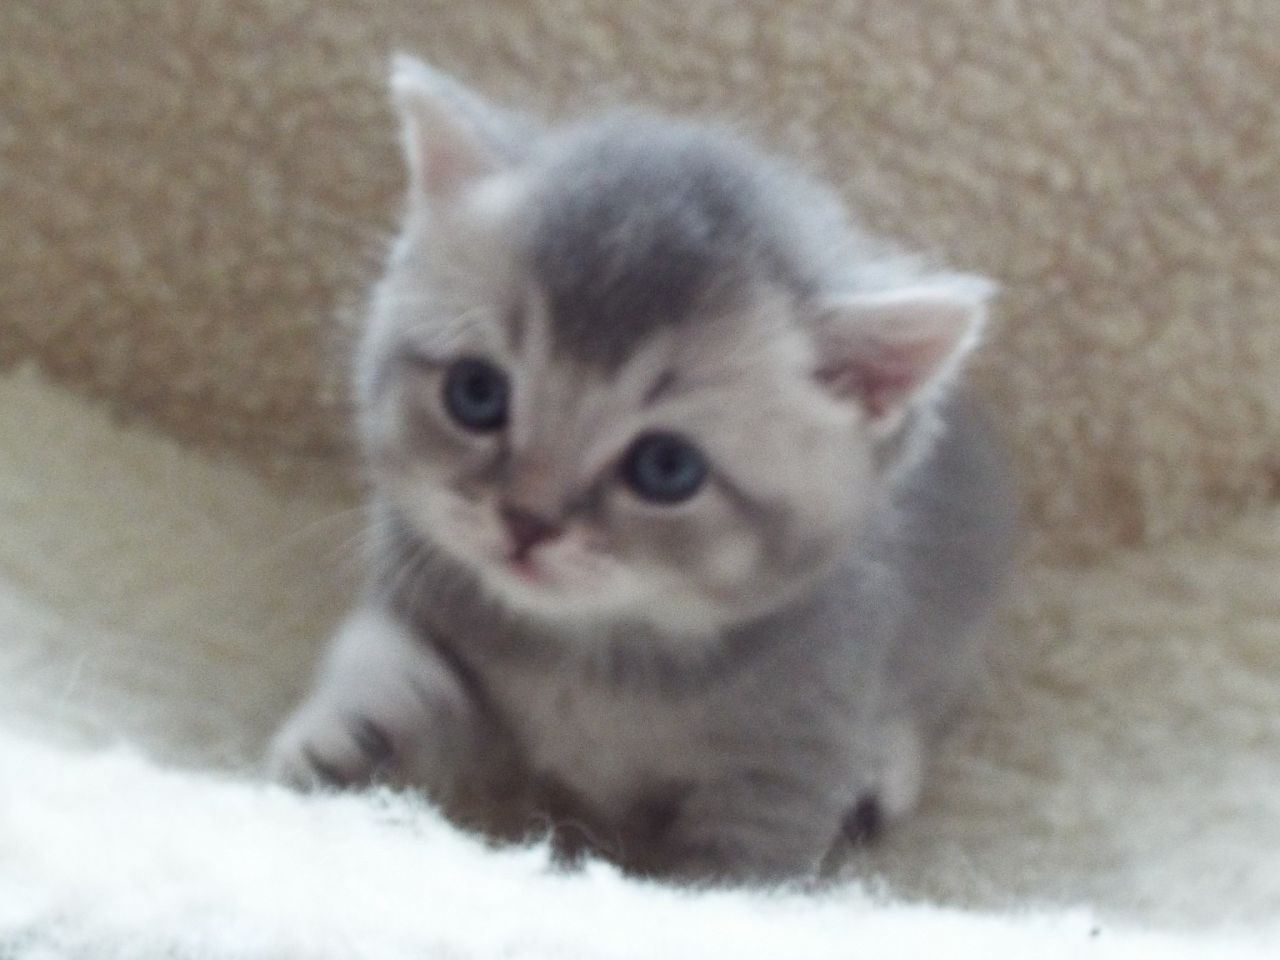 Cuddly Cats With Folded Ear Cat Breeds Scottish Fold Kittens